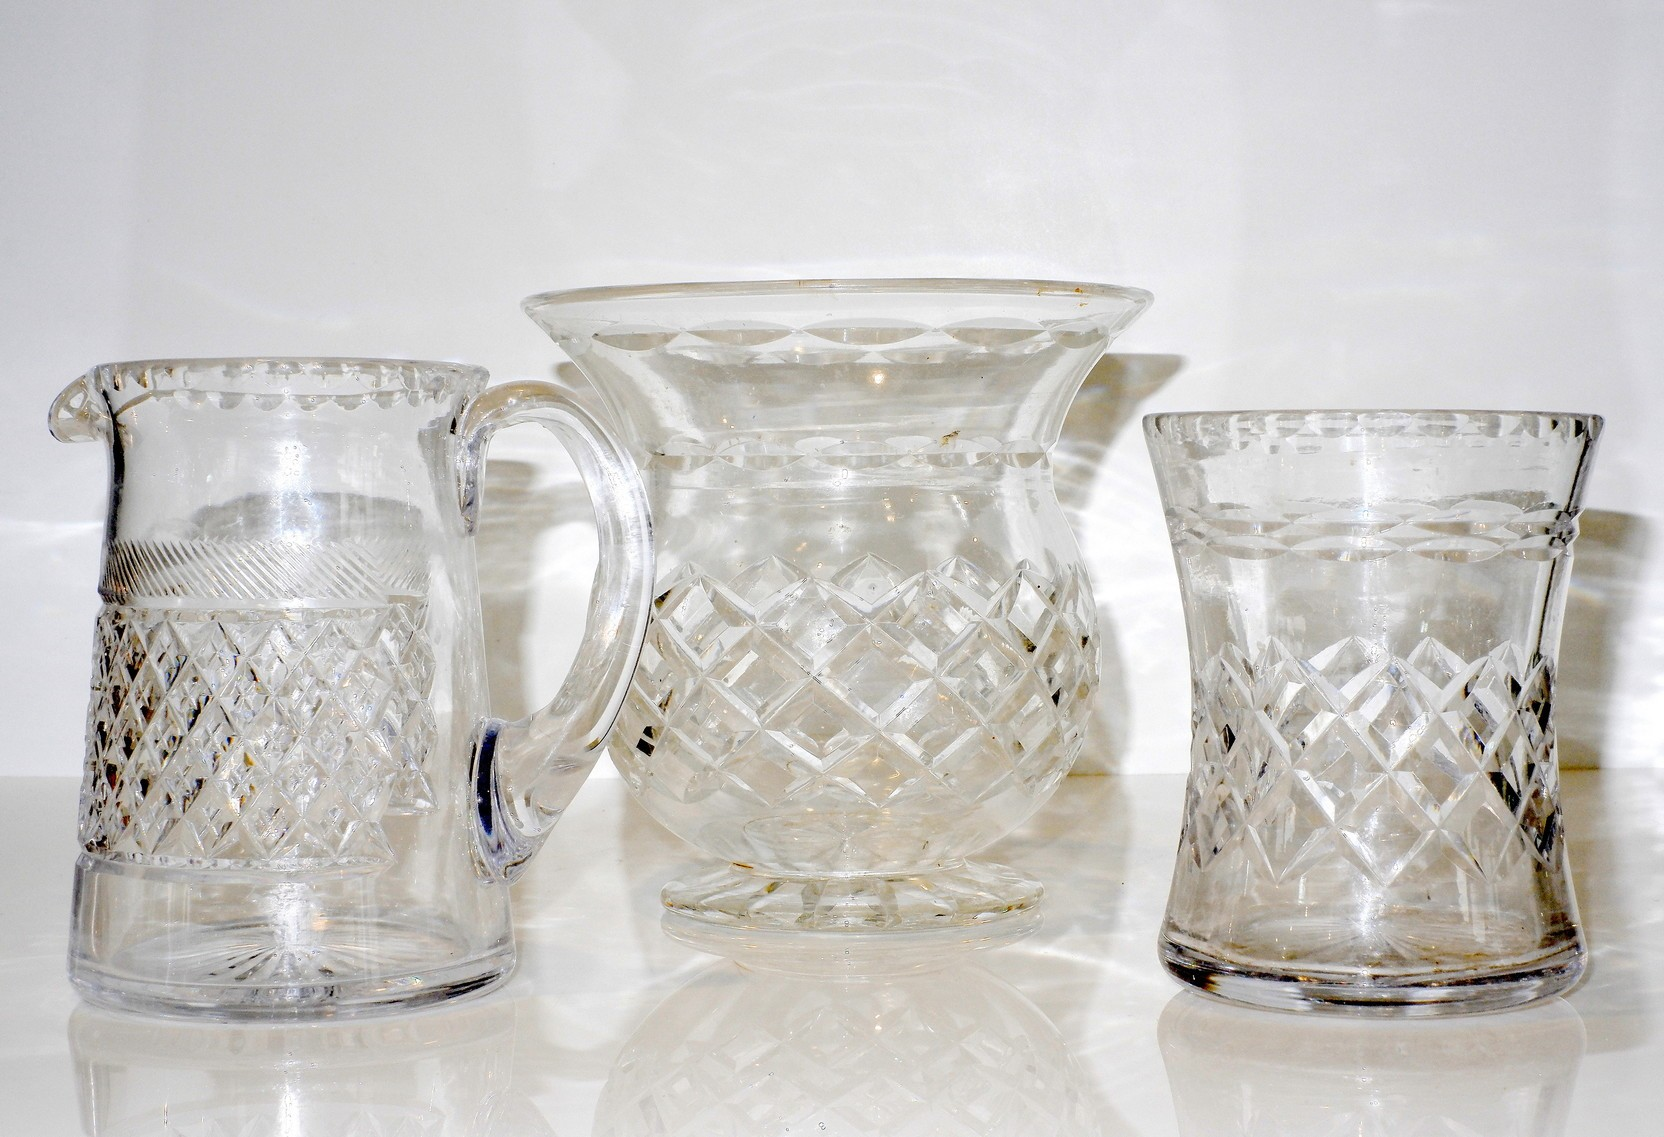 'Three Various English Cut Crystal Wares'